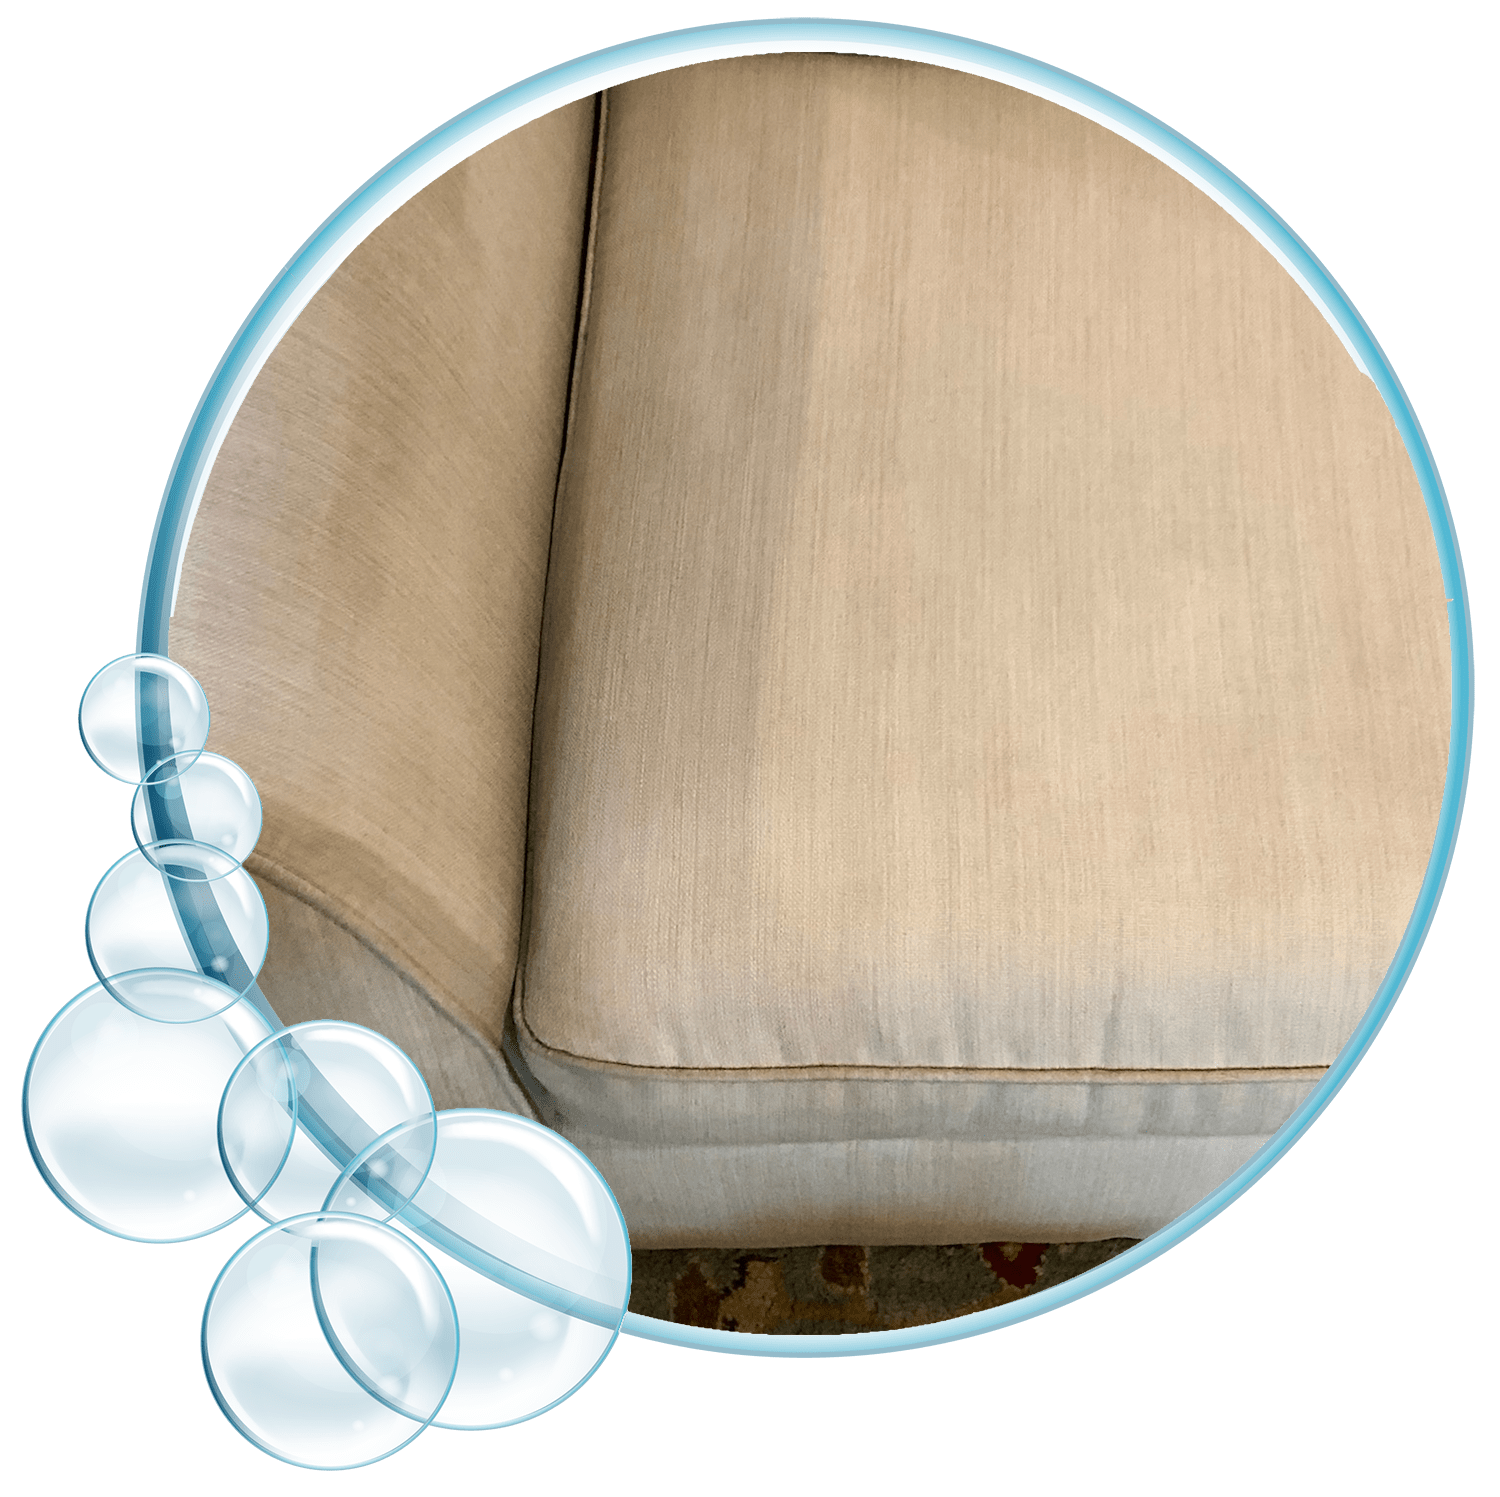 Upholstery Cleaning - Howards Cleaning